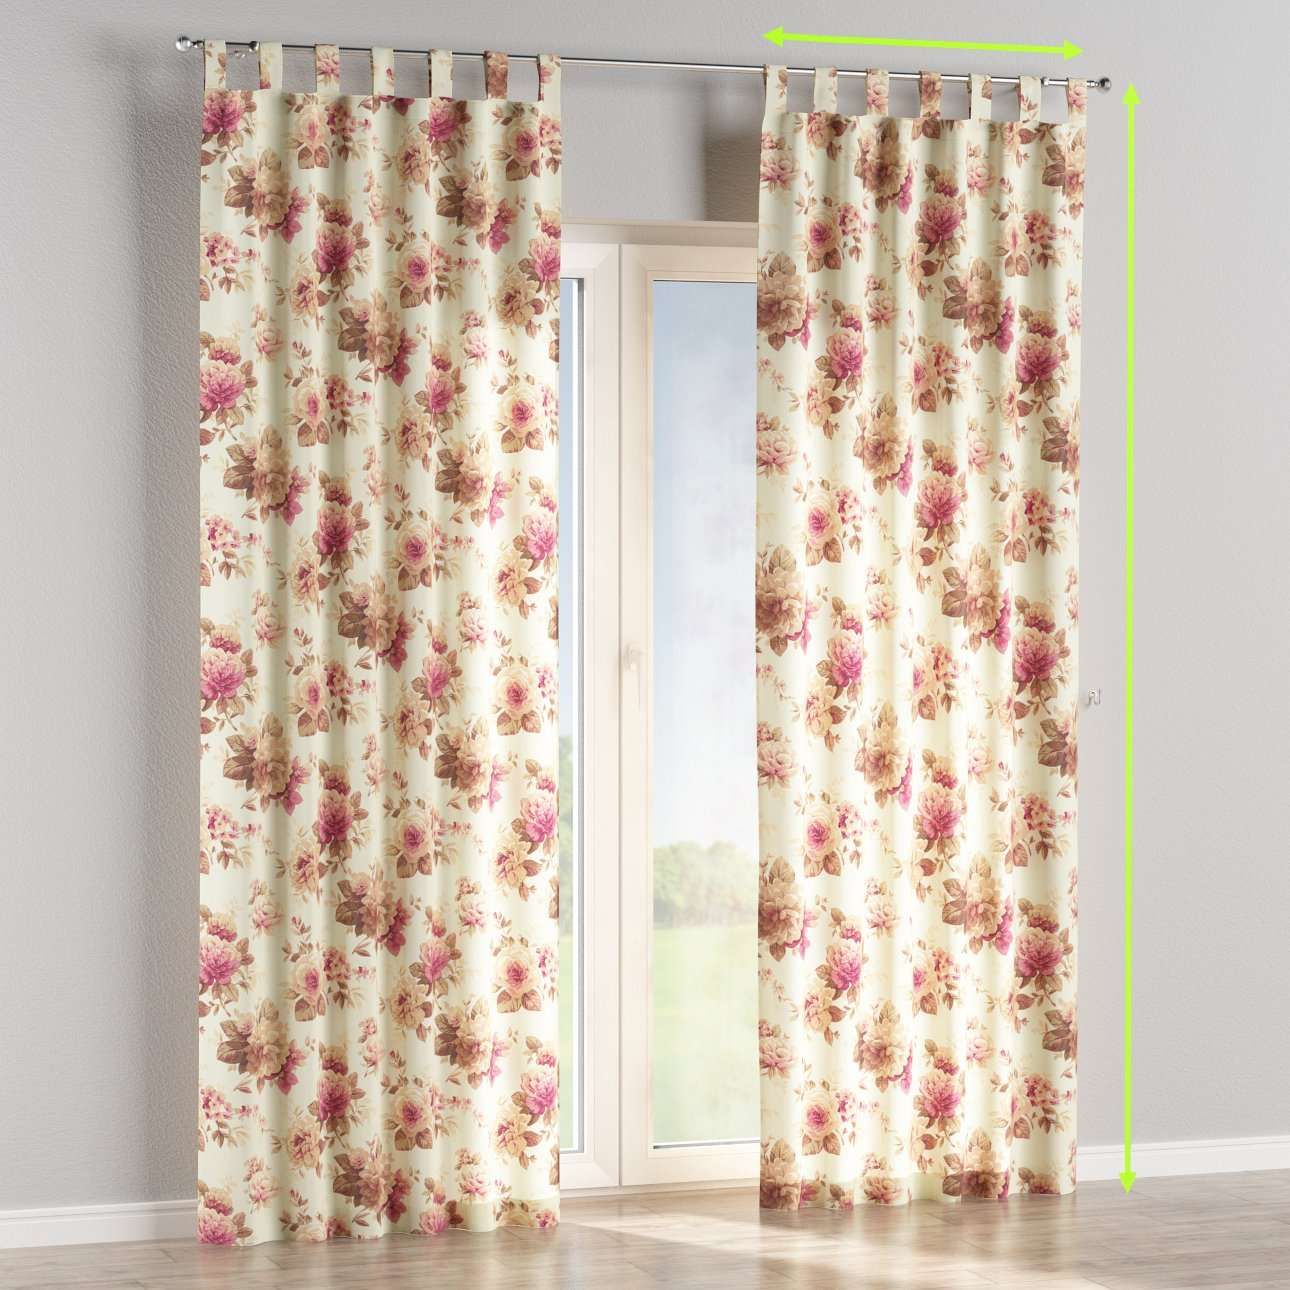 Tab top lined curtains in collection Mirella, fabric: 141-06